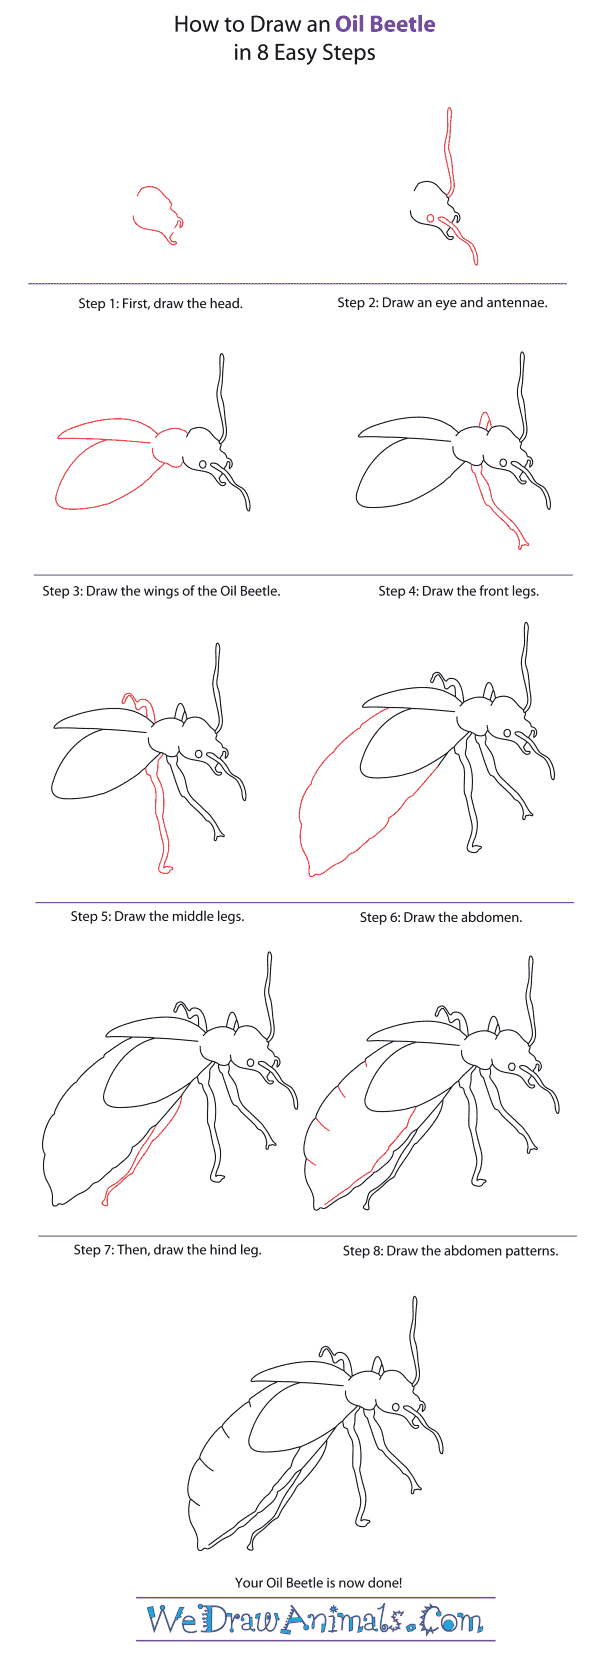 How to Draw an Oil Beetle - Step-By-Step Tutorial